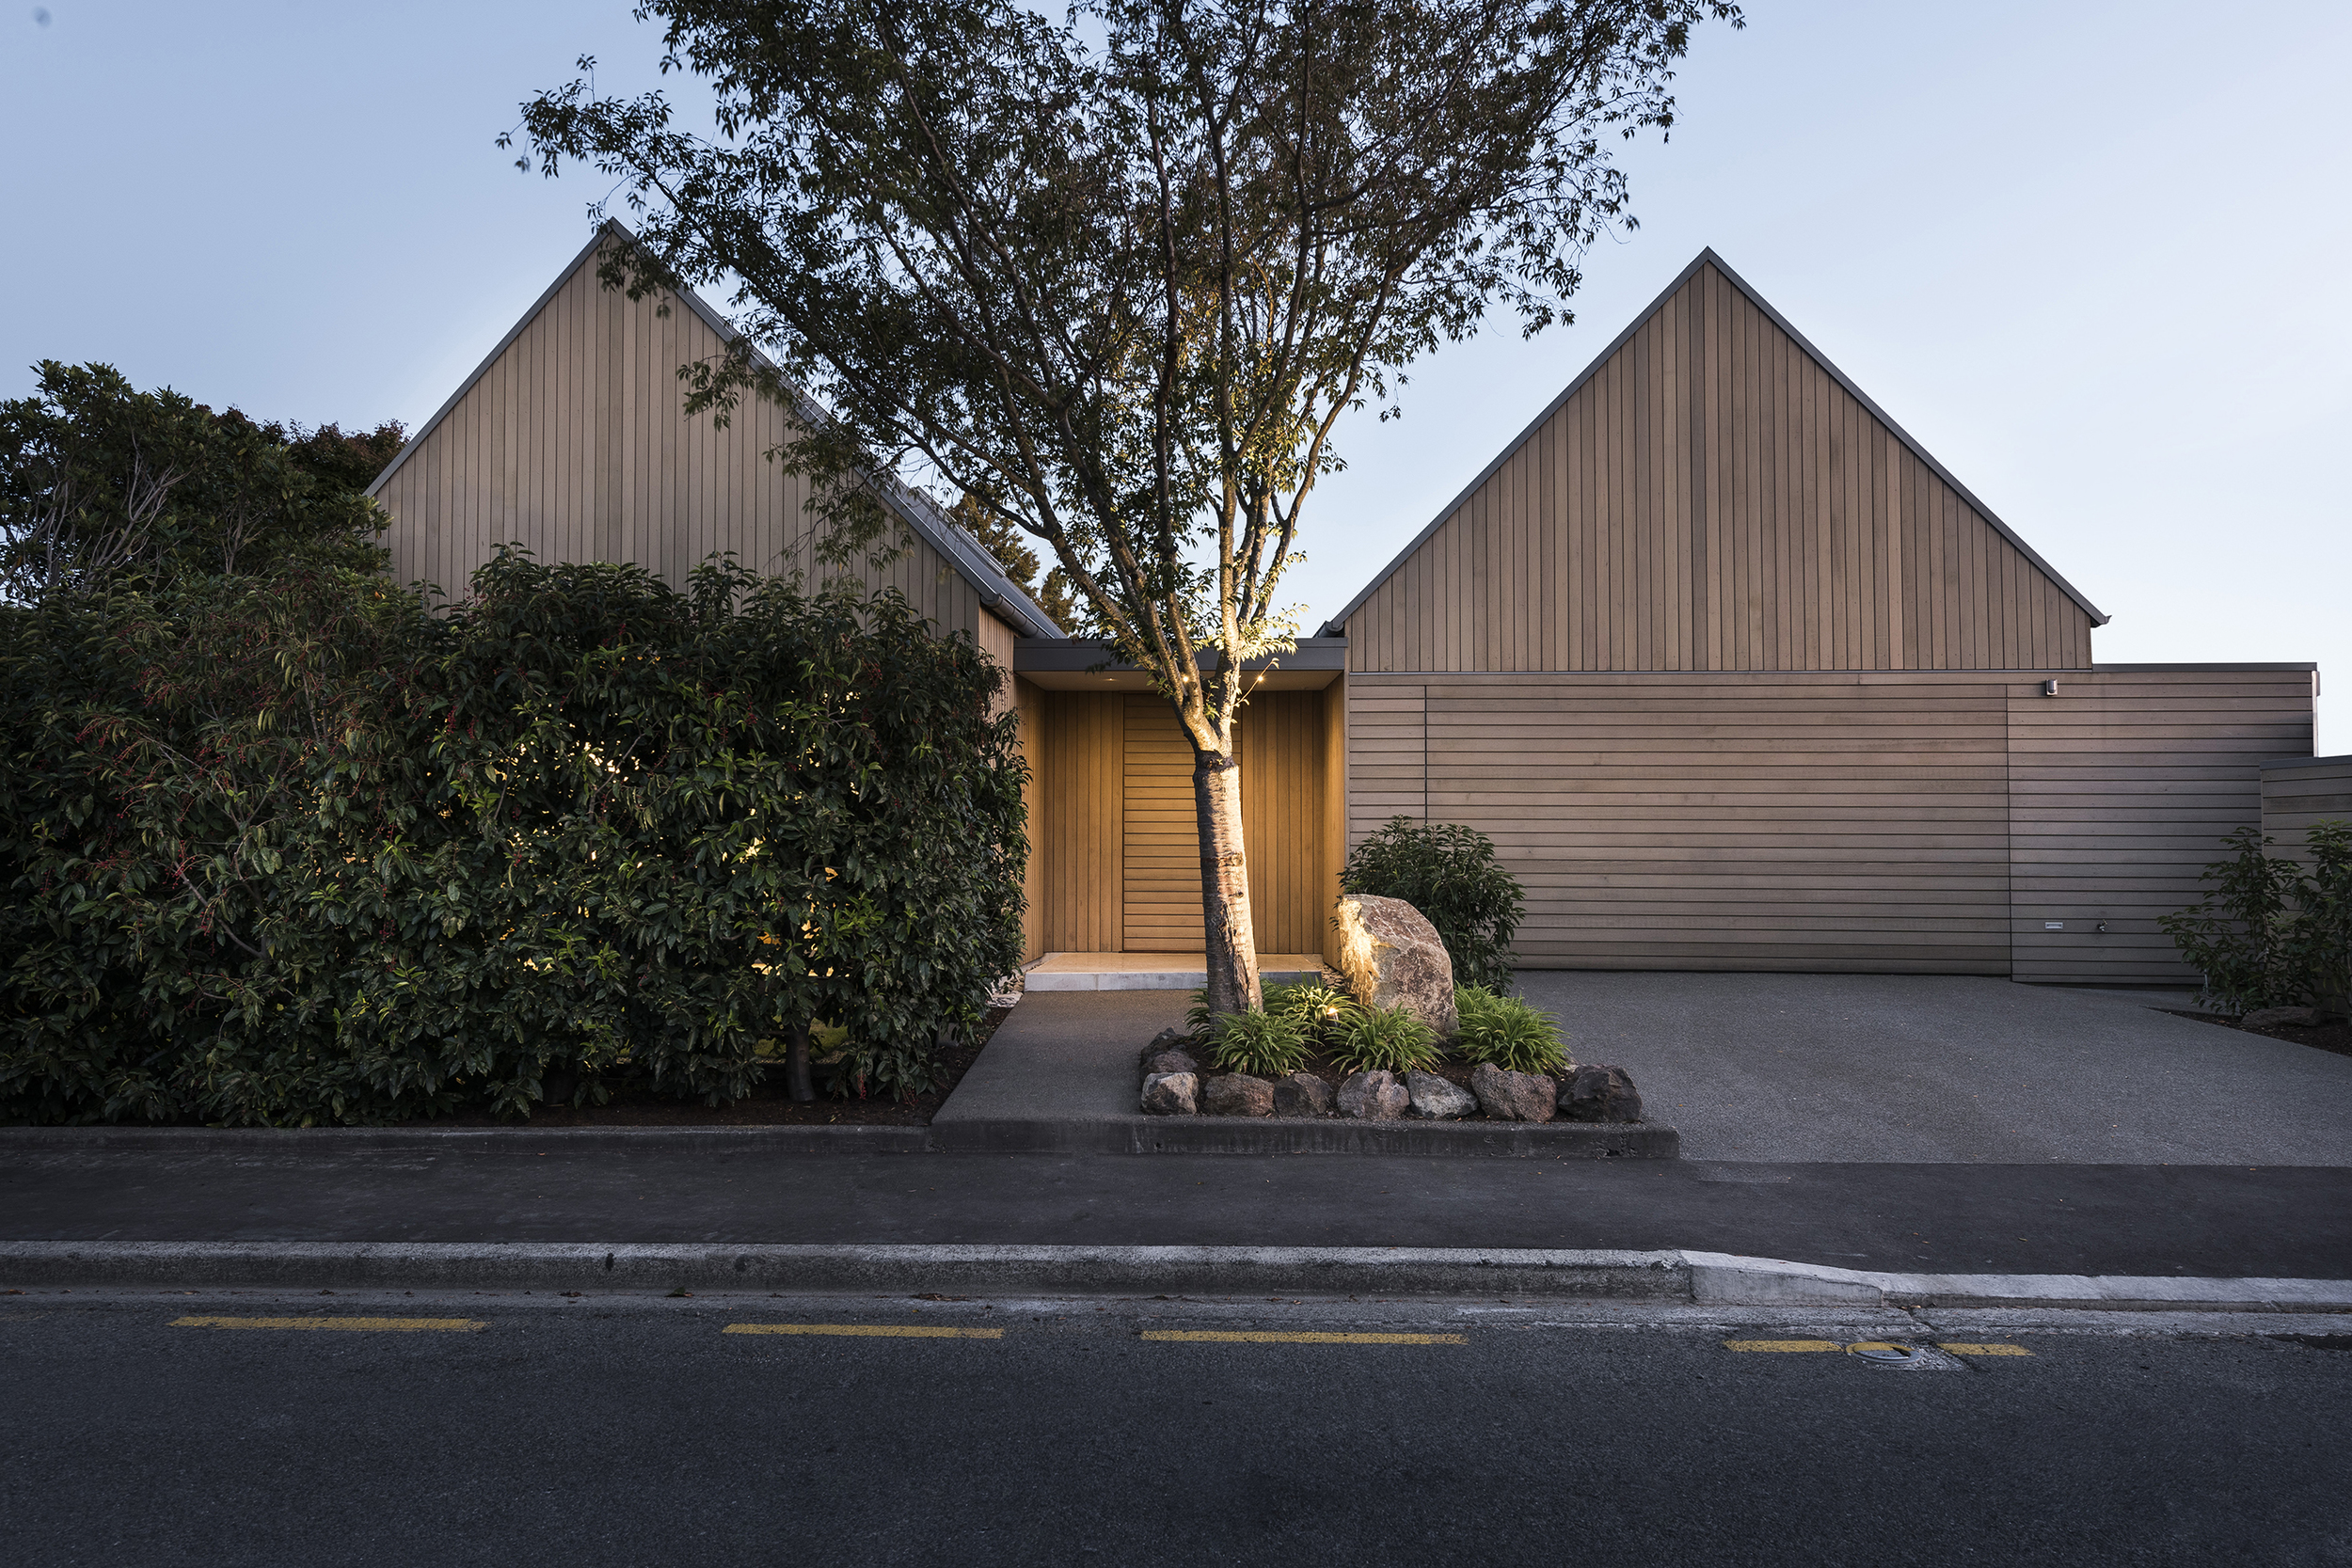 Andover Street house by Case Ornsby